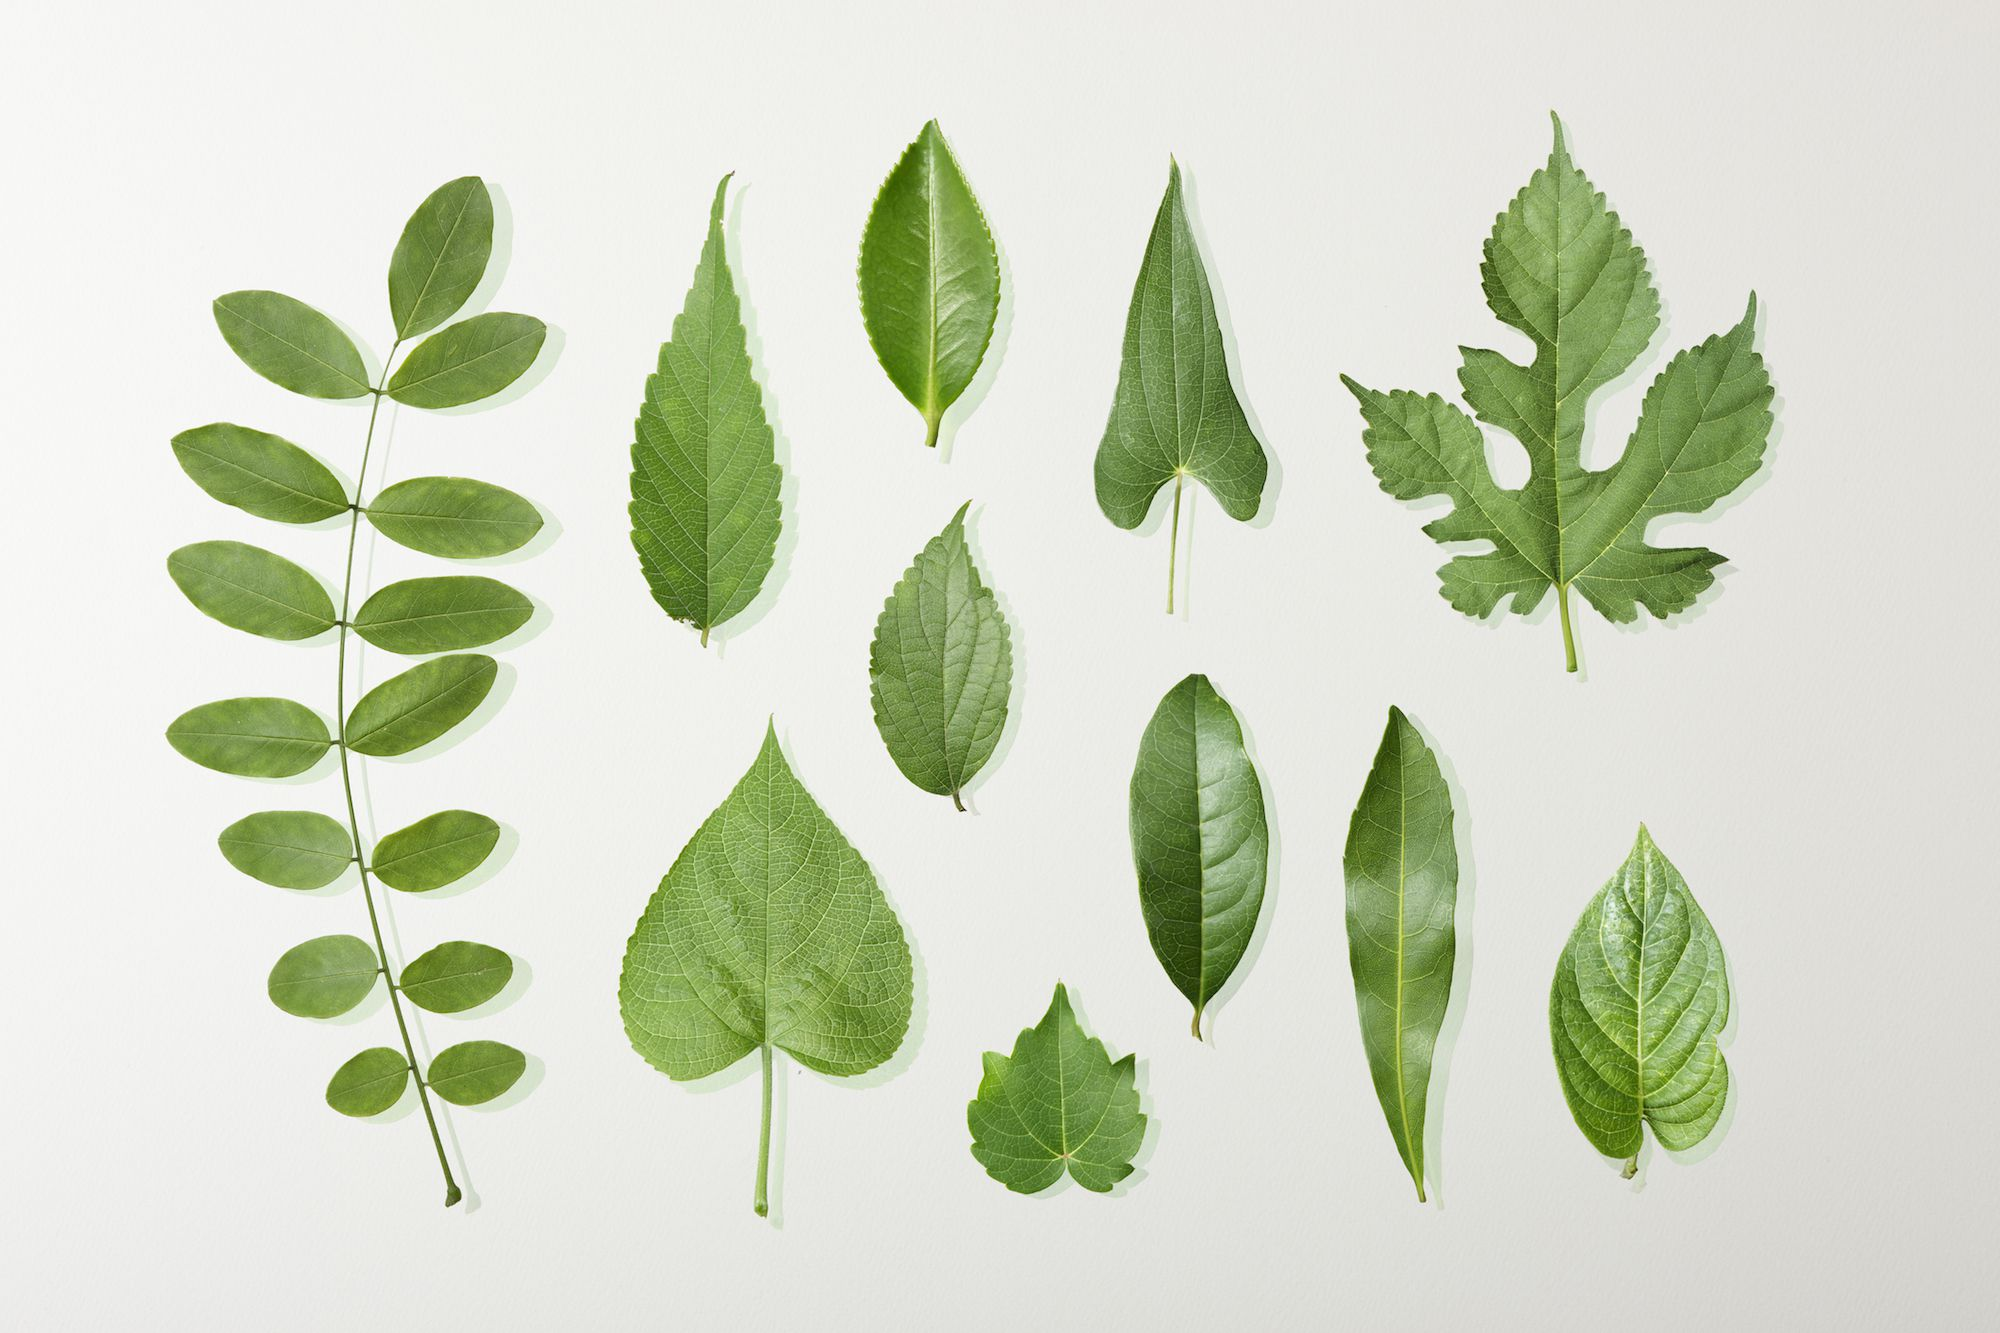 Create Your Own Tree Leaf Exhibit Or Collection